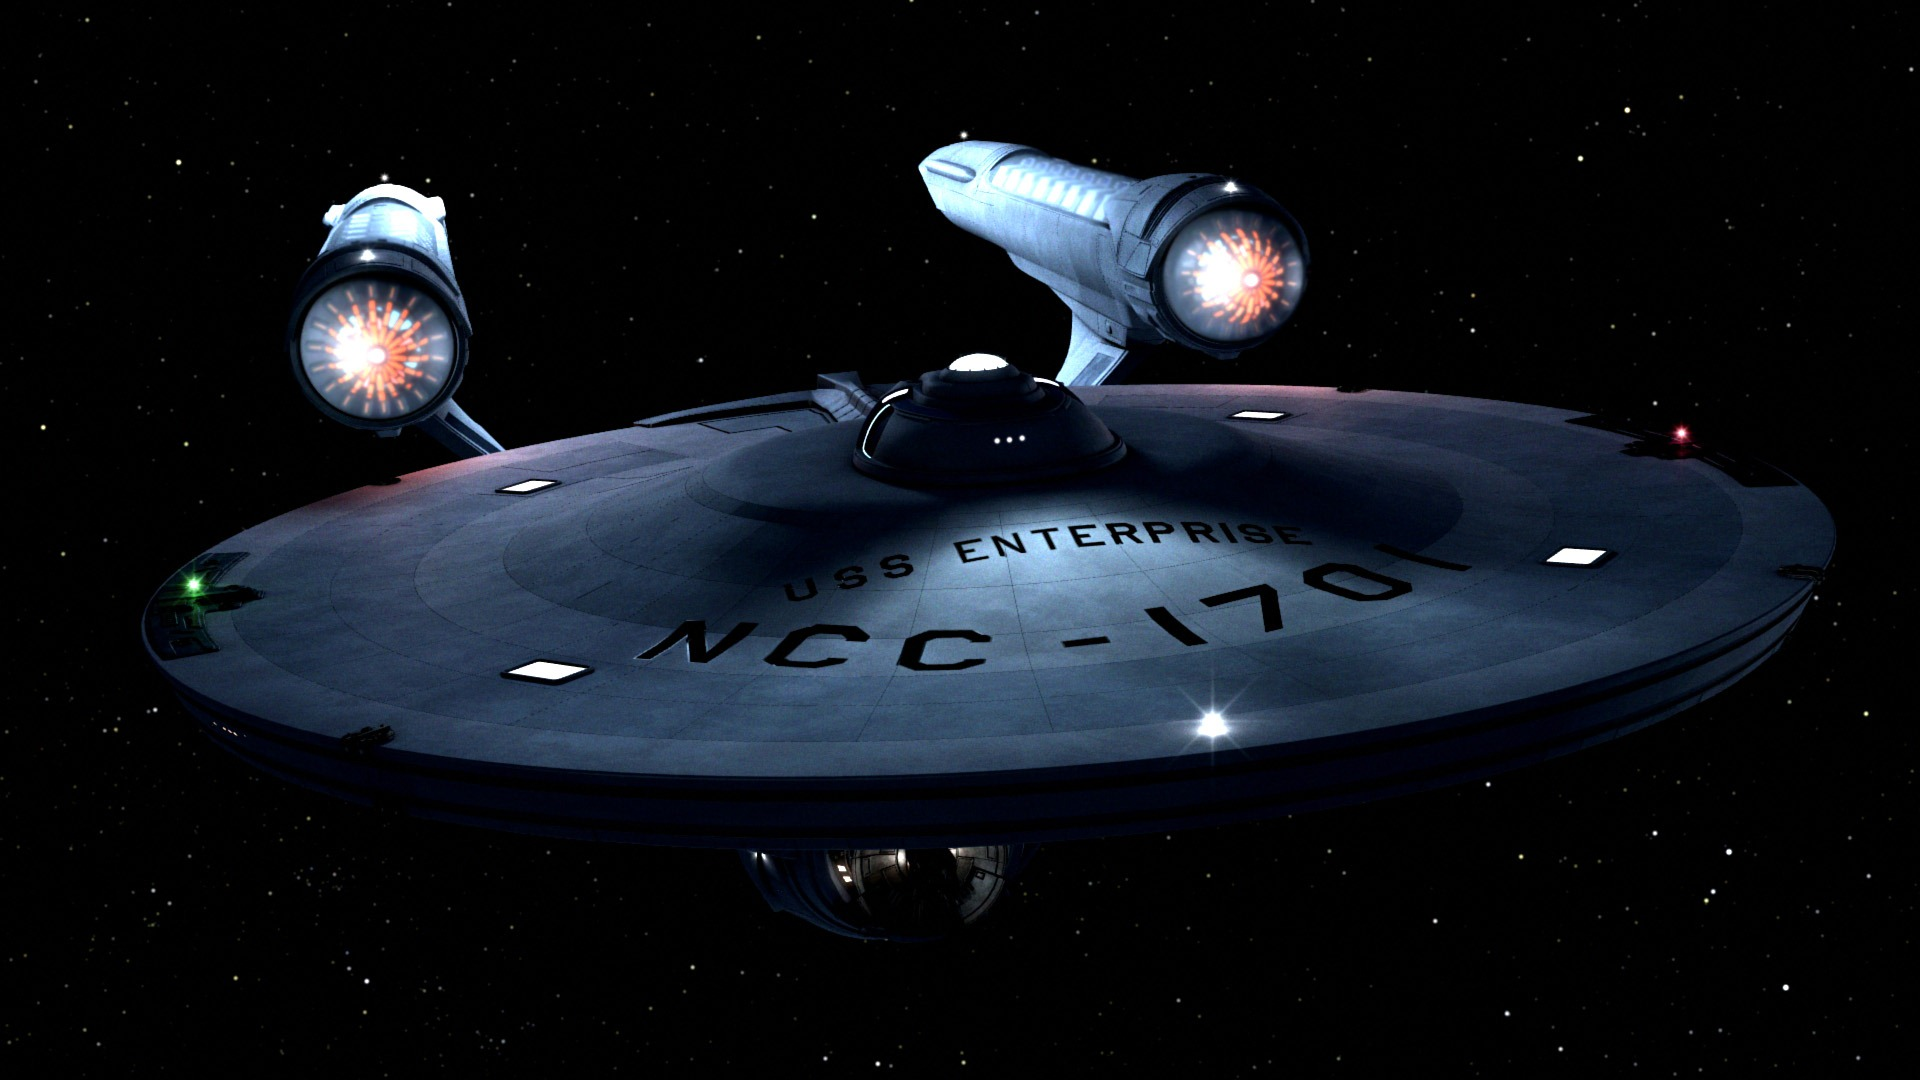 Just a nice image of the TOS Enterprise done in CGI I think See it 1920x1080